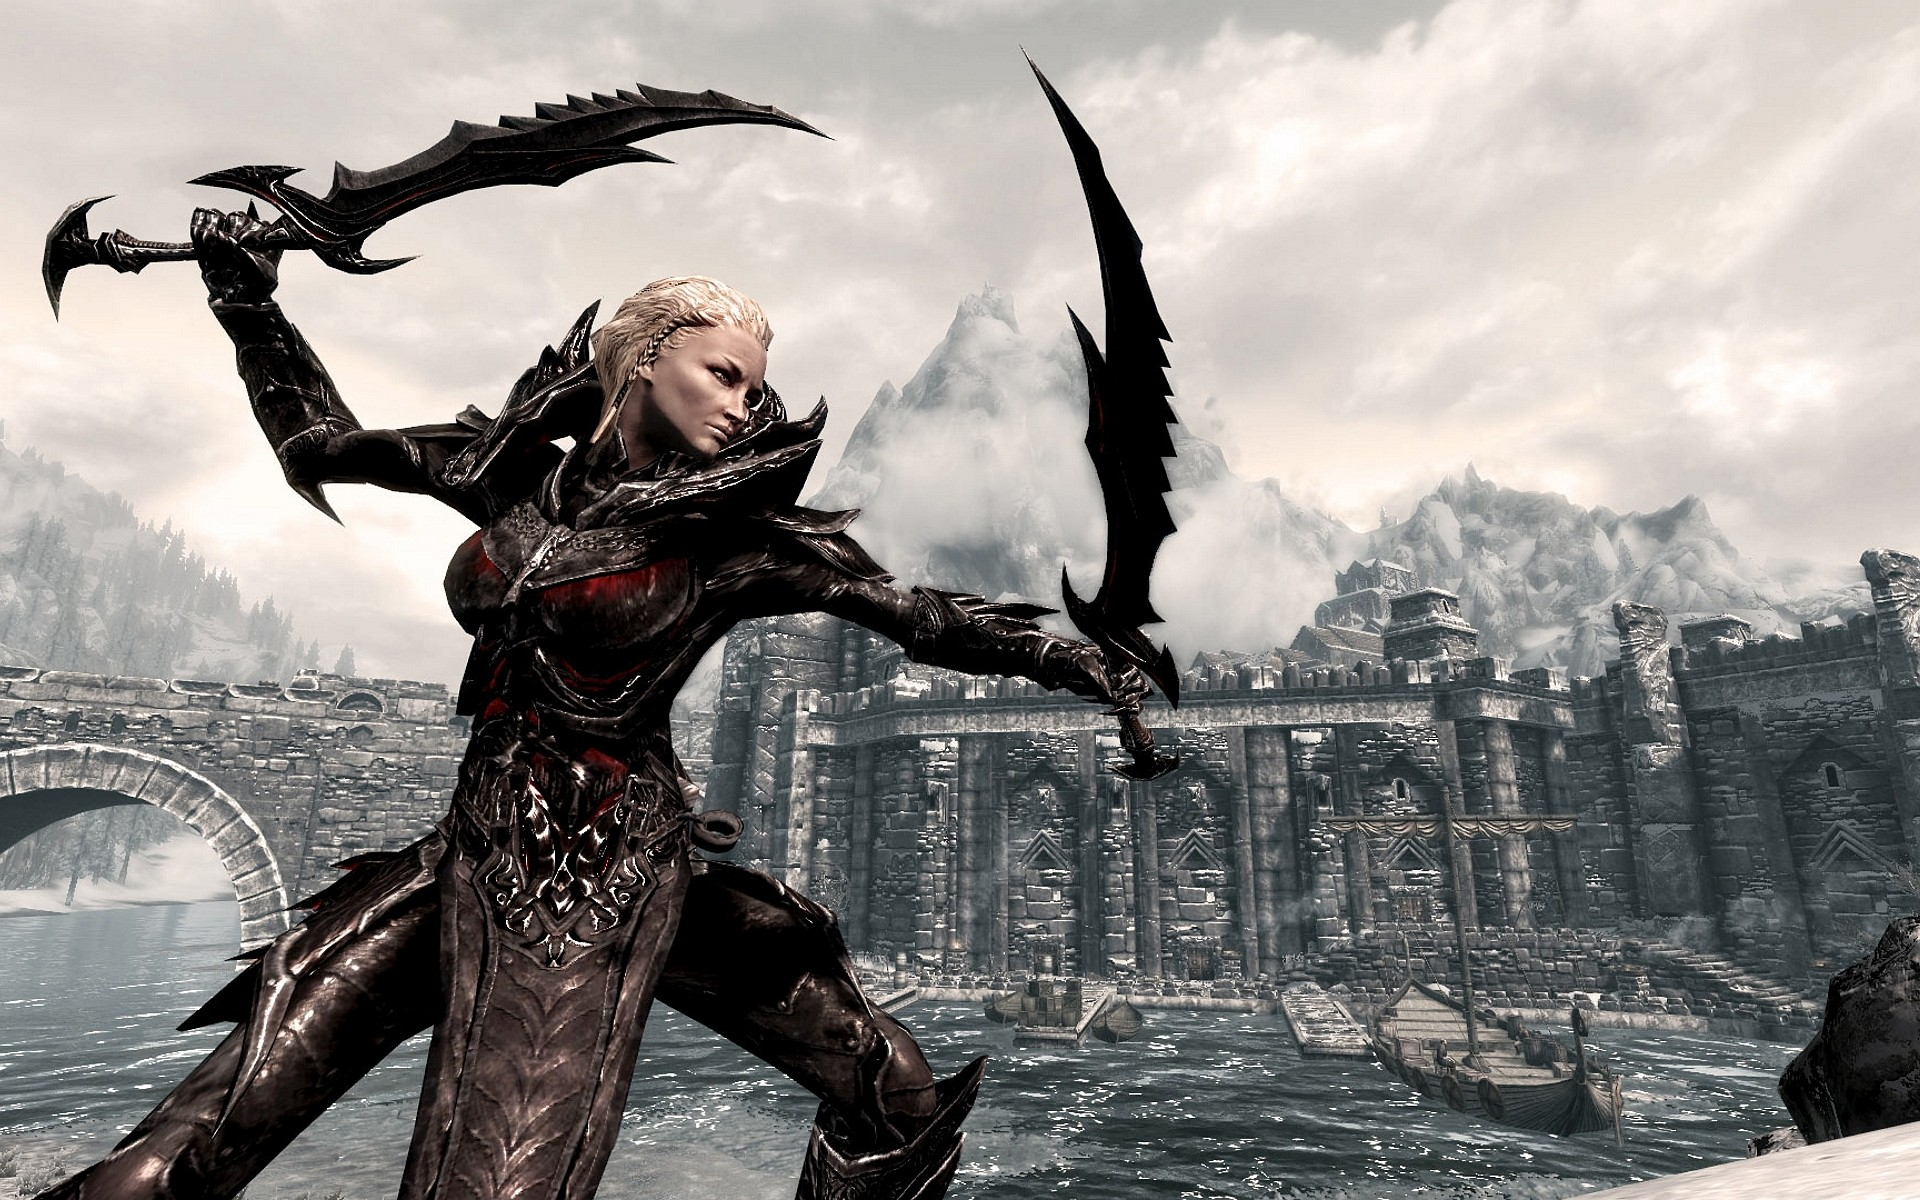 1920x1200 Best Picture skyrim daedric armor wallpaper - I Gamers Hood